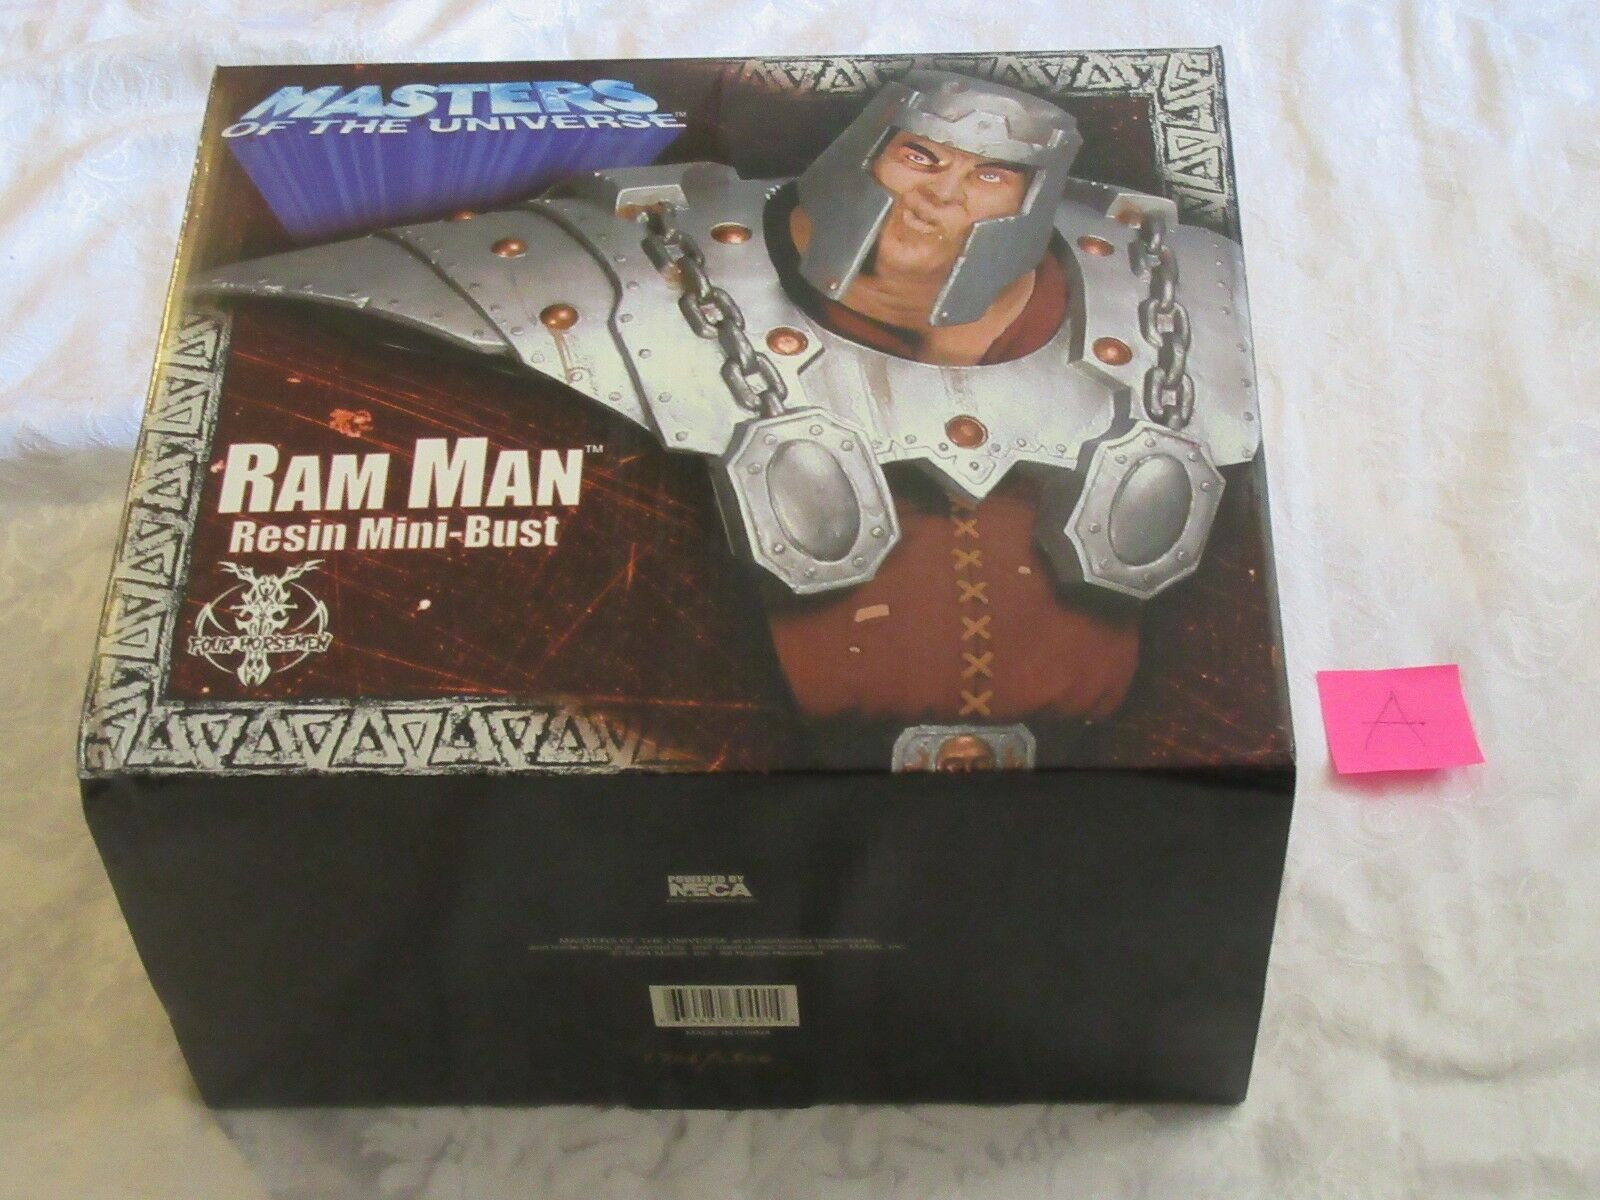 Neca Masters of the Universe MOTU Ram Man Resin Mini Bust Statue A  1706 2500